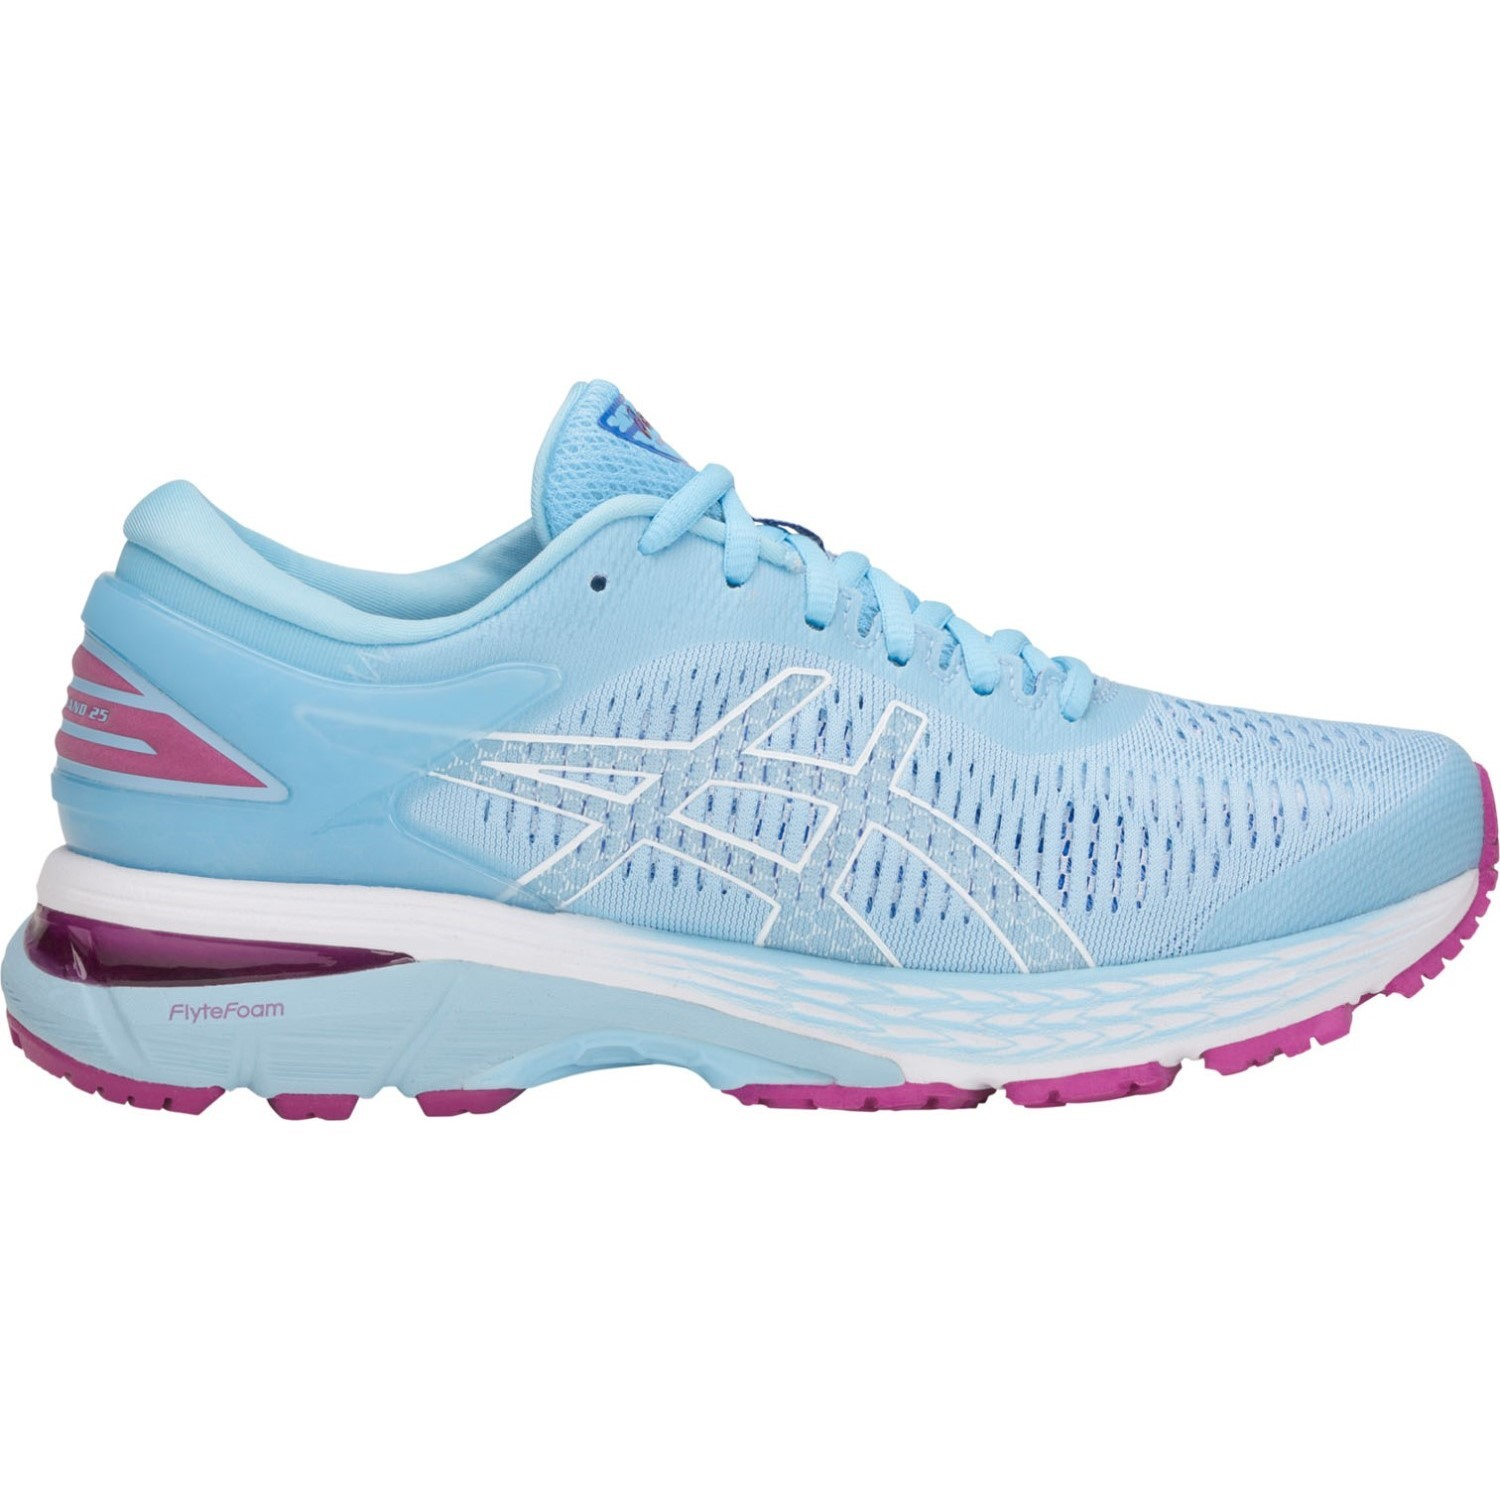 low priced 2cb93 0fe69 Asics Gel Kayano 25 - Womens Running Shoes